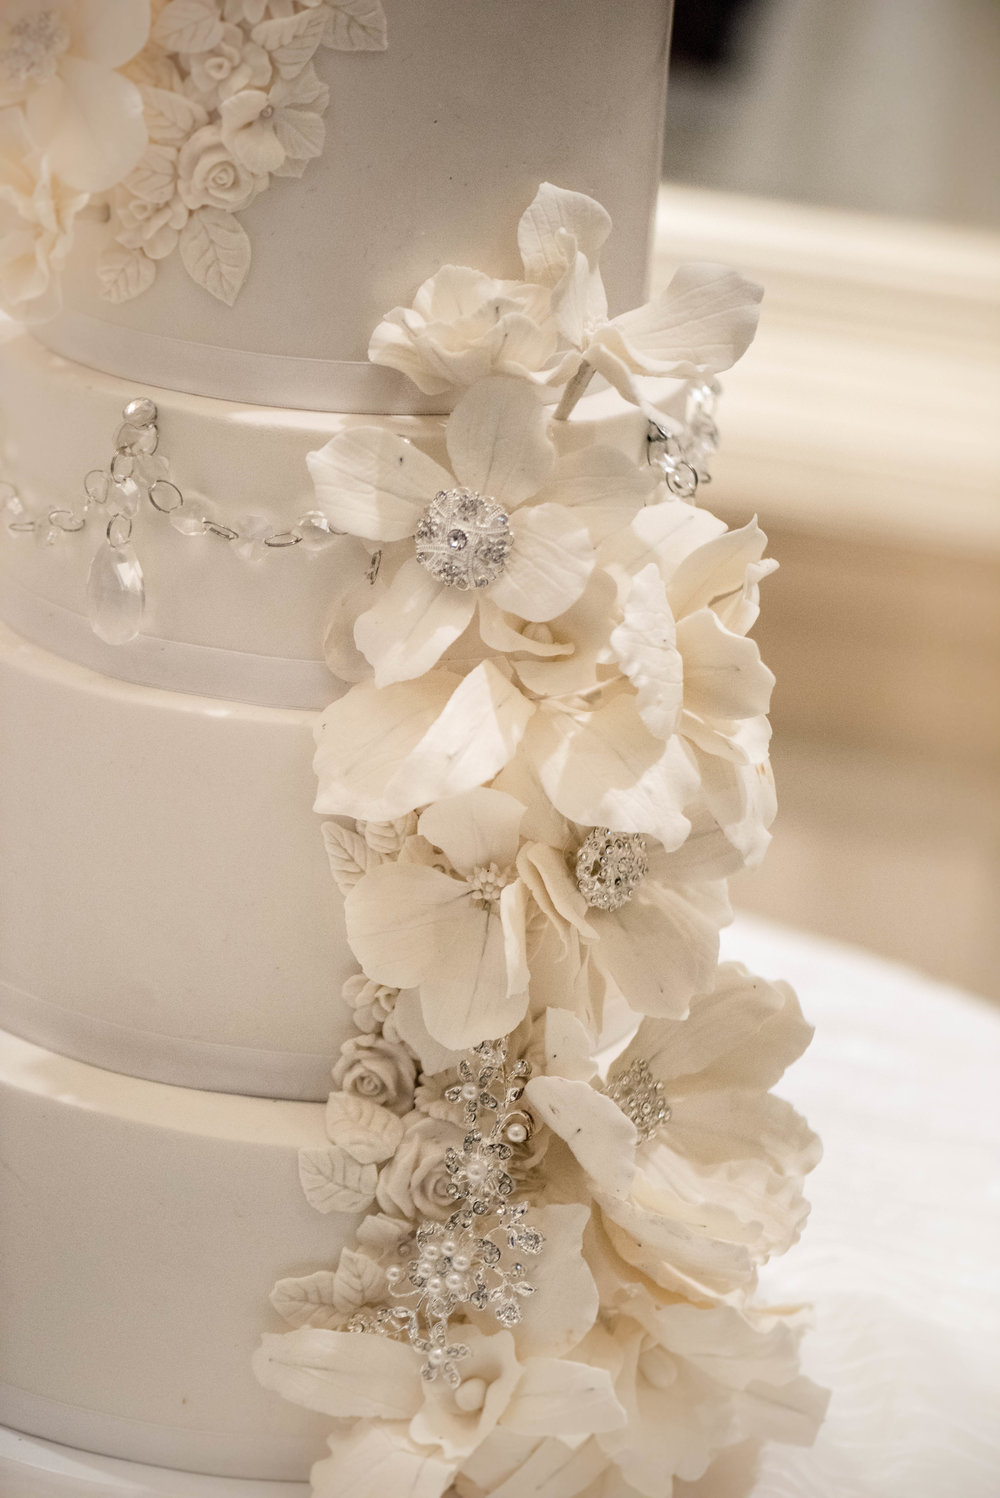 The sugar flowers were accented with Swarovski crystals -